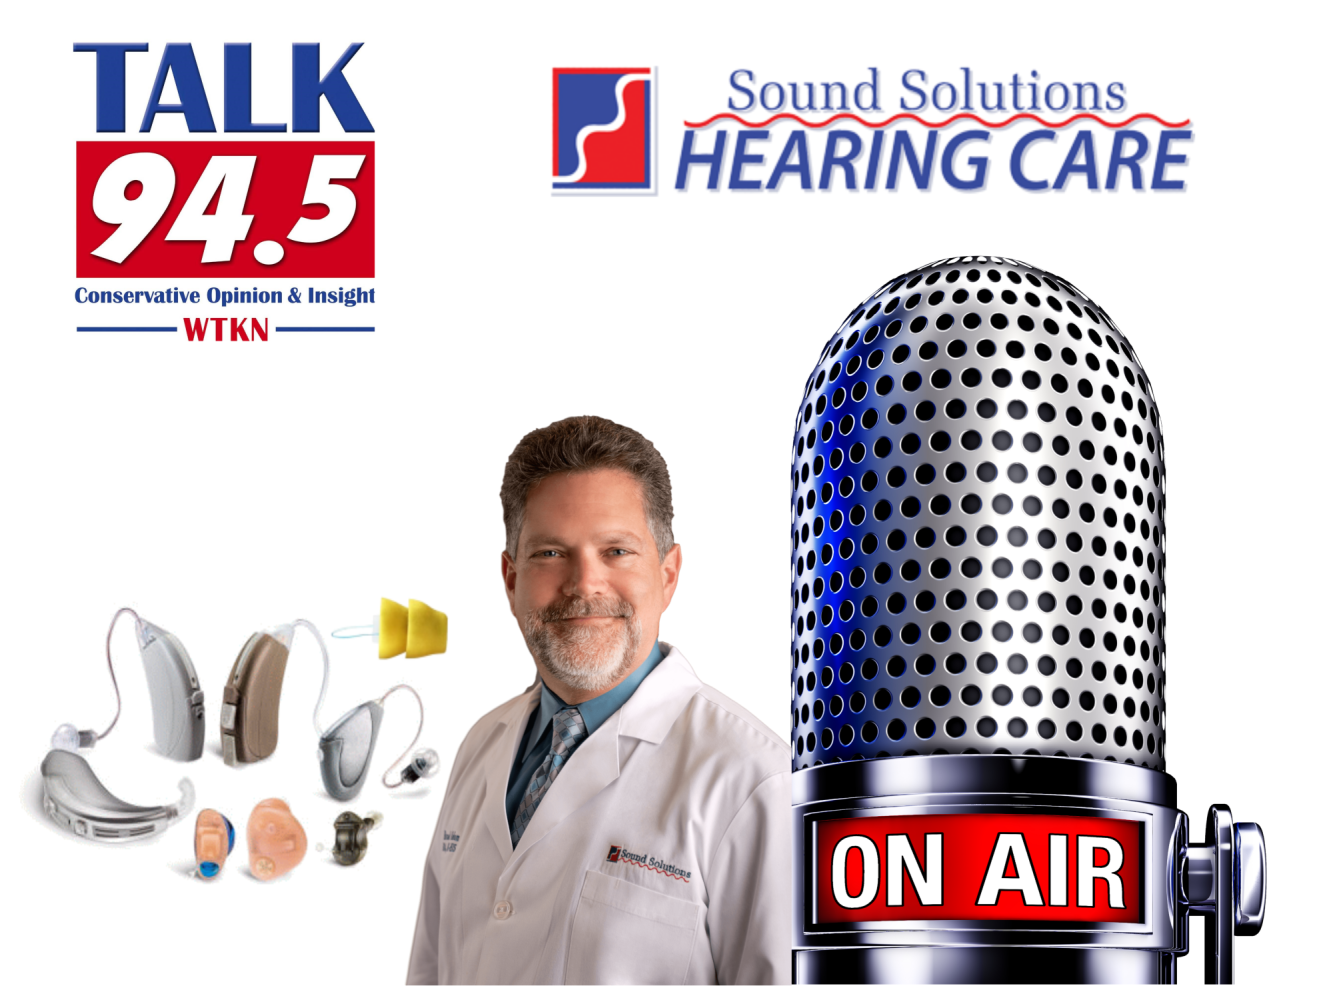 Listen to Radio Talk Show 94.5 with Brad Odom from Sound Solutions